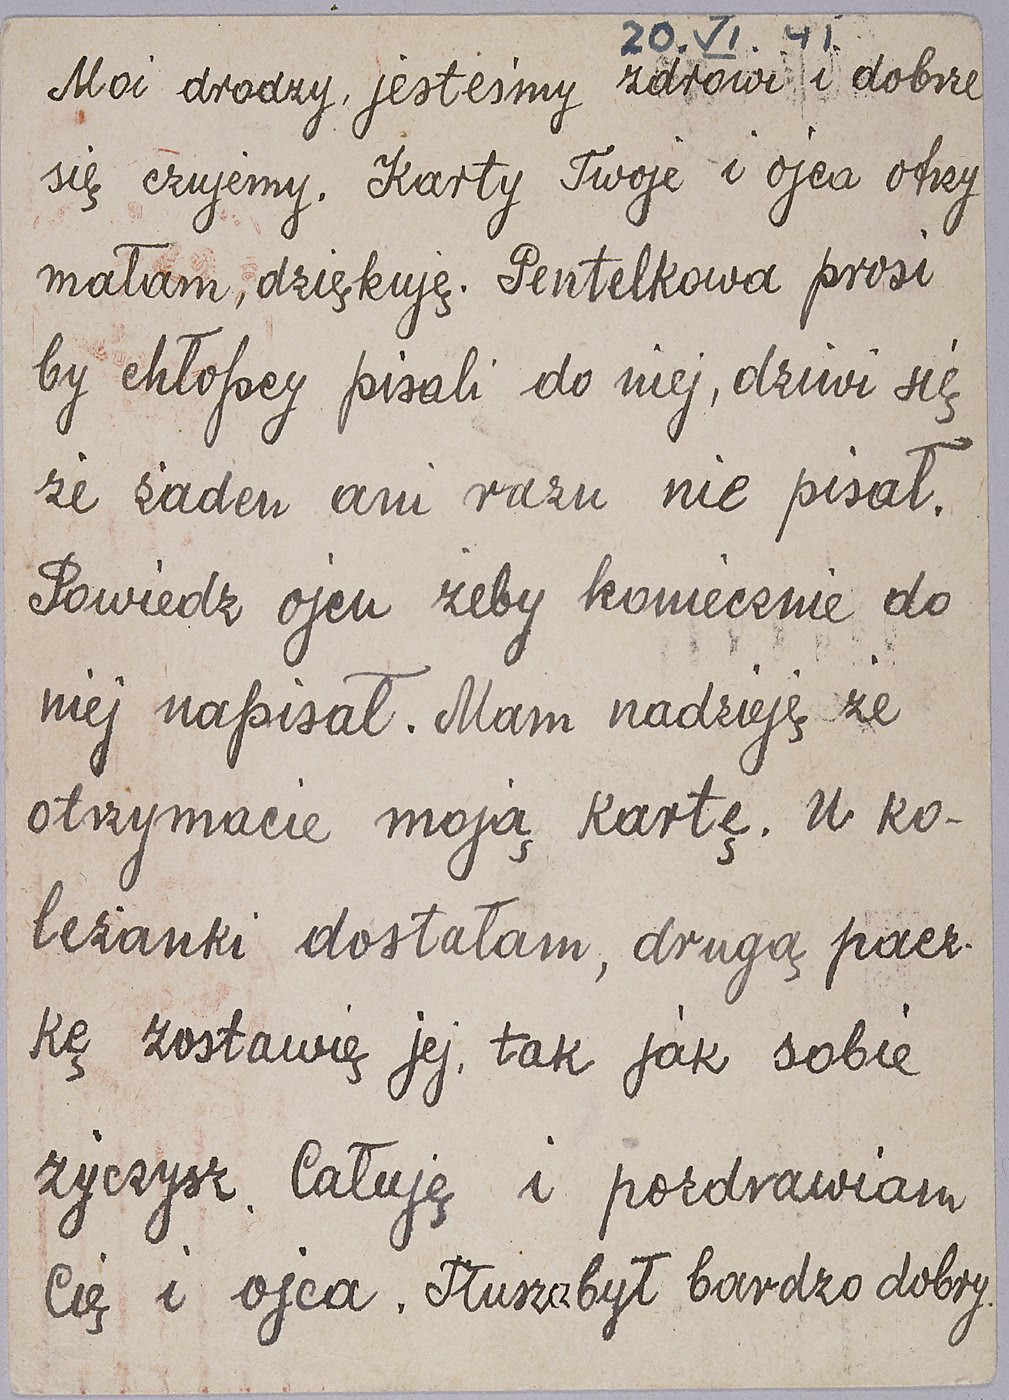 <p>Family and friends of Ruth Segal (Rys Berkowicz) sent this postcard to her in Kobe, Japan. They sent the postcard from Warsaw, in German-occupied Poland, on June 20, 1941. [From the USHMM special exhibition Flight and Rescue.]</p>